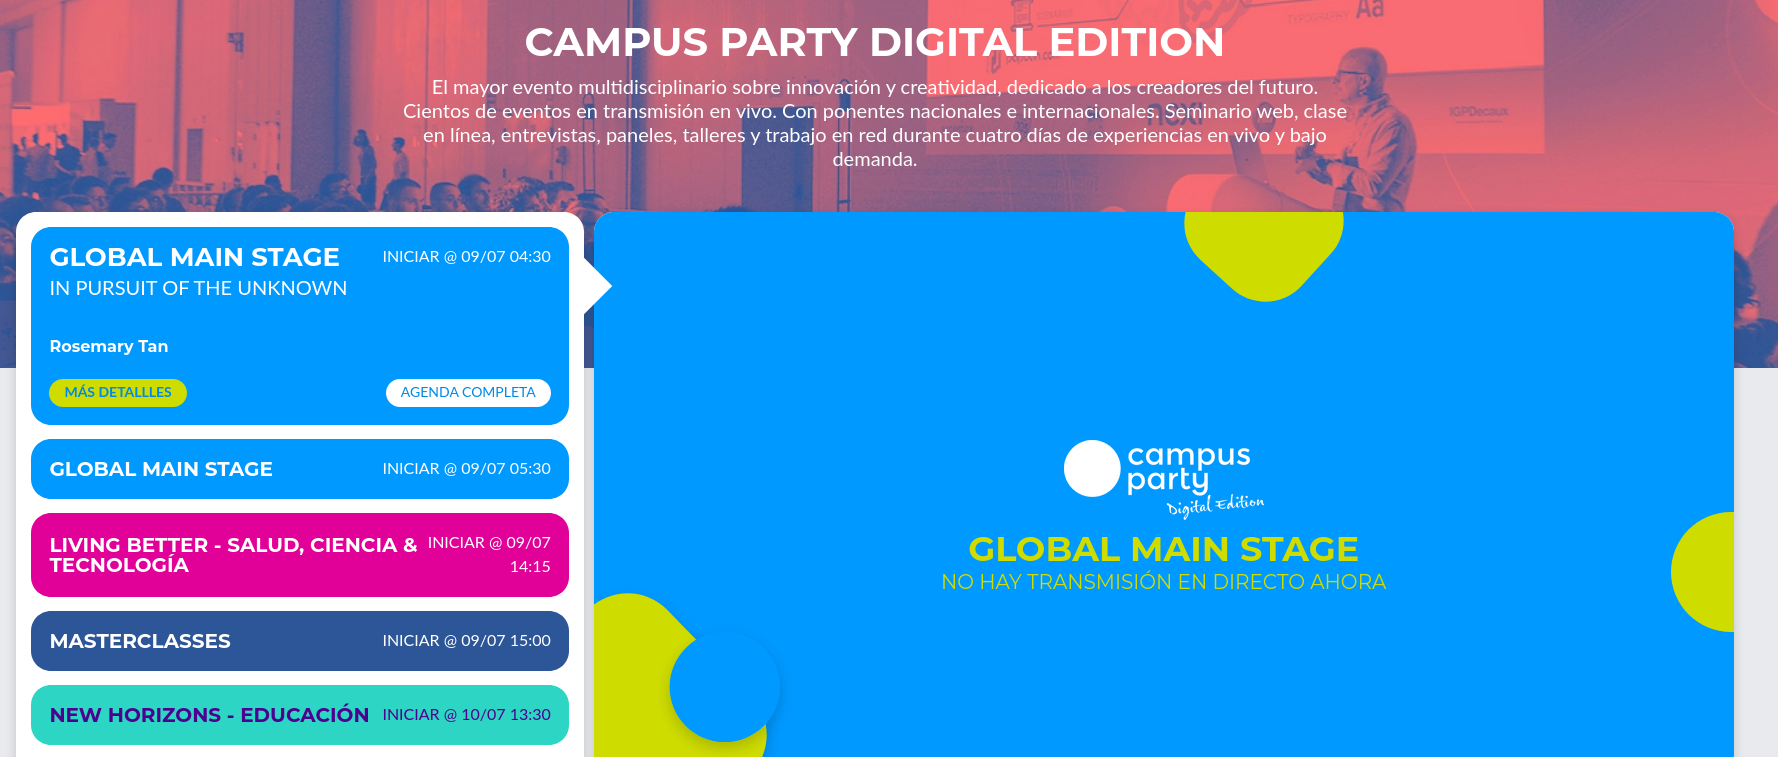 Campus Party Digital Edition 2020 Paraguay